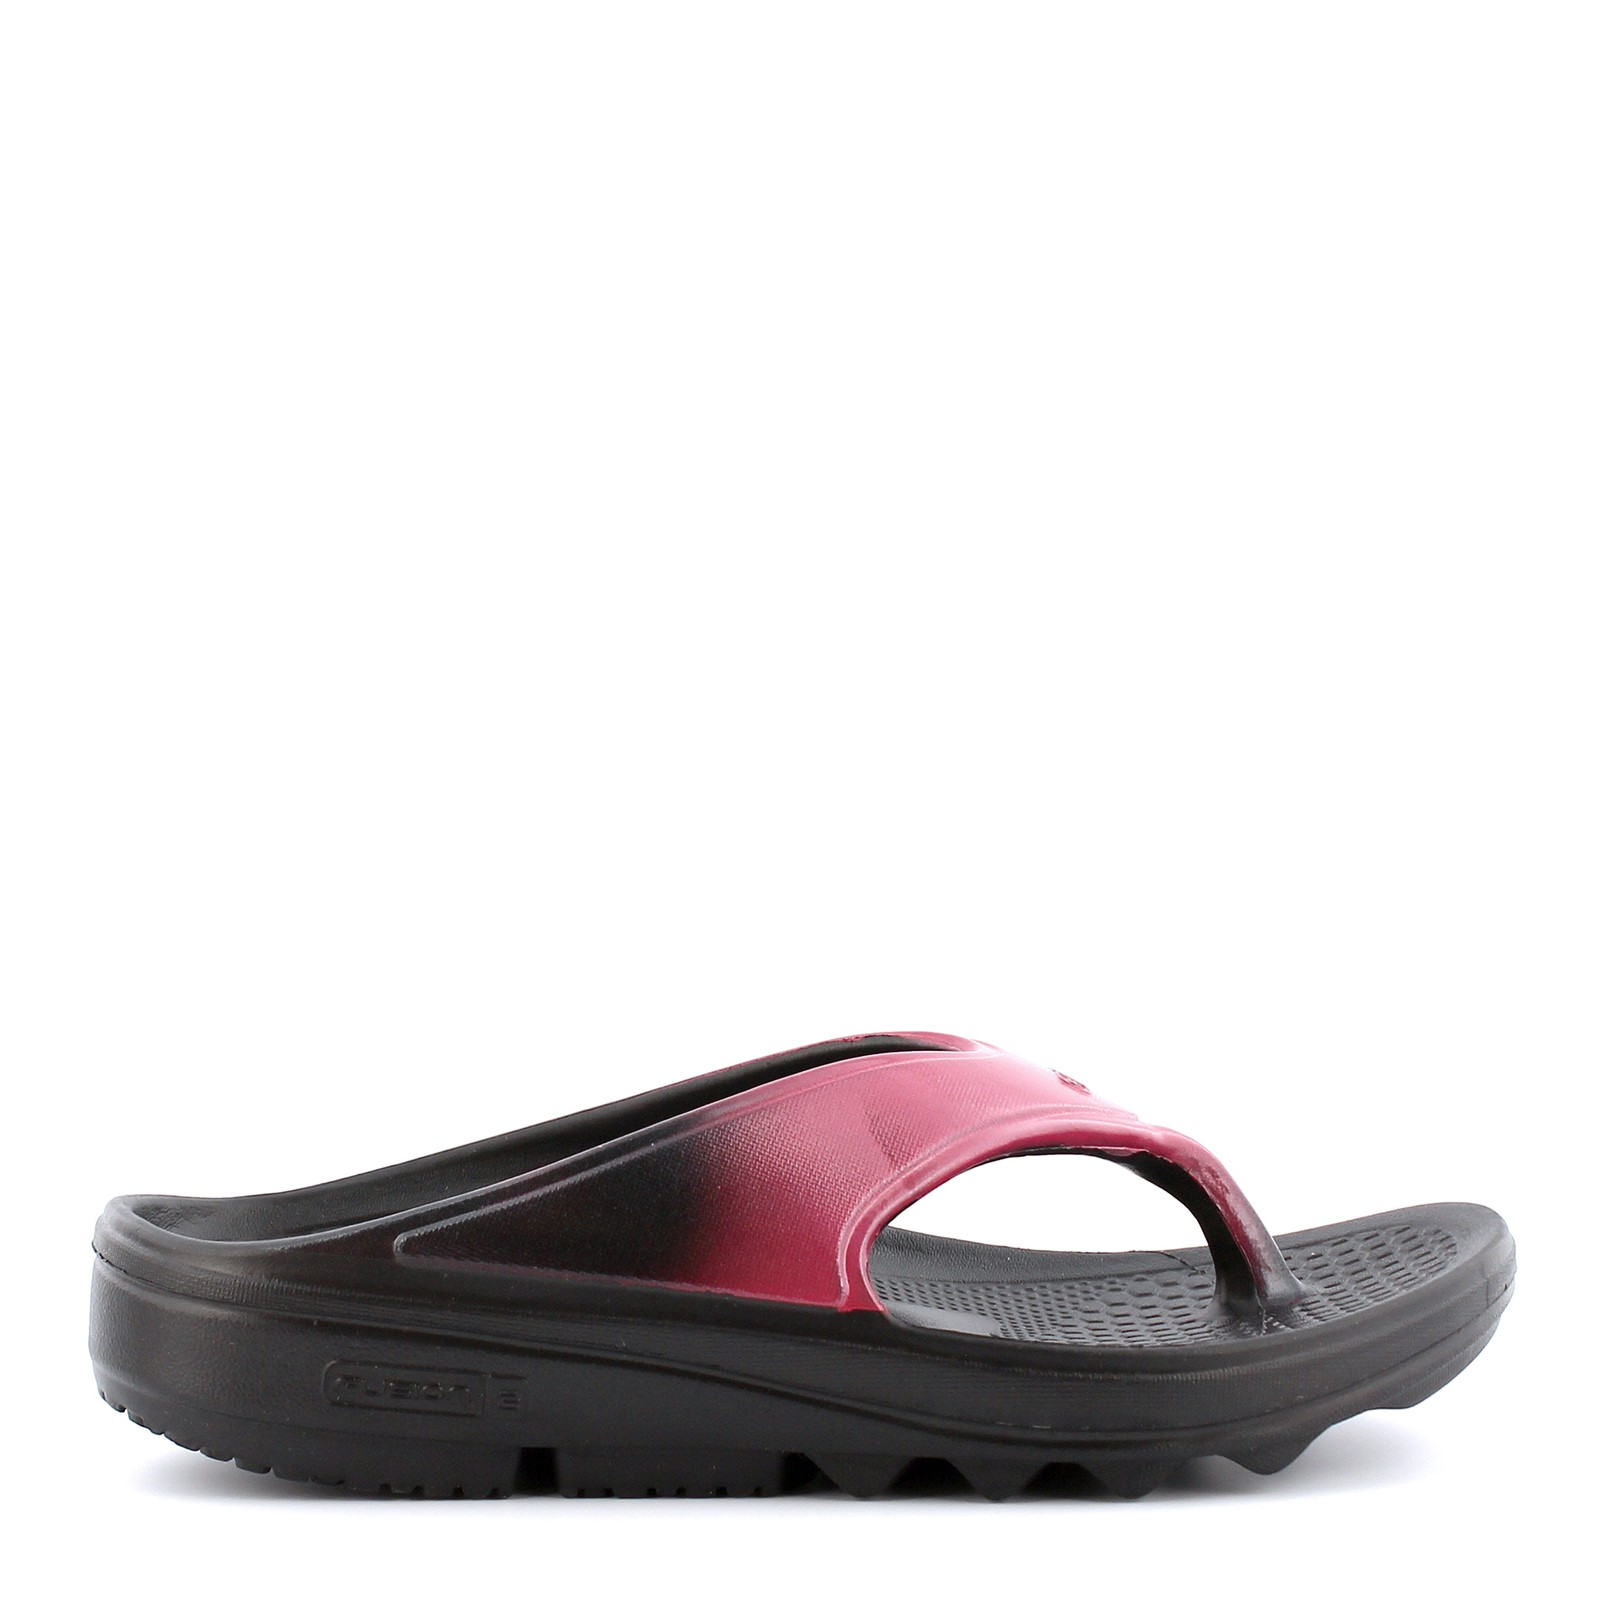 Women's Spenco, Fusion 2 Fade Sandals